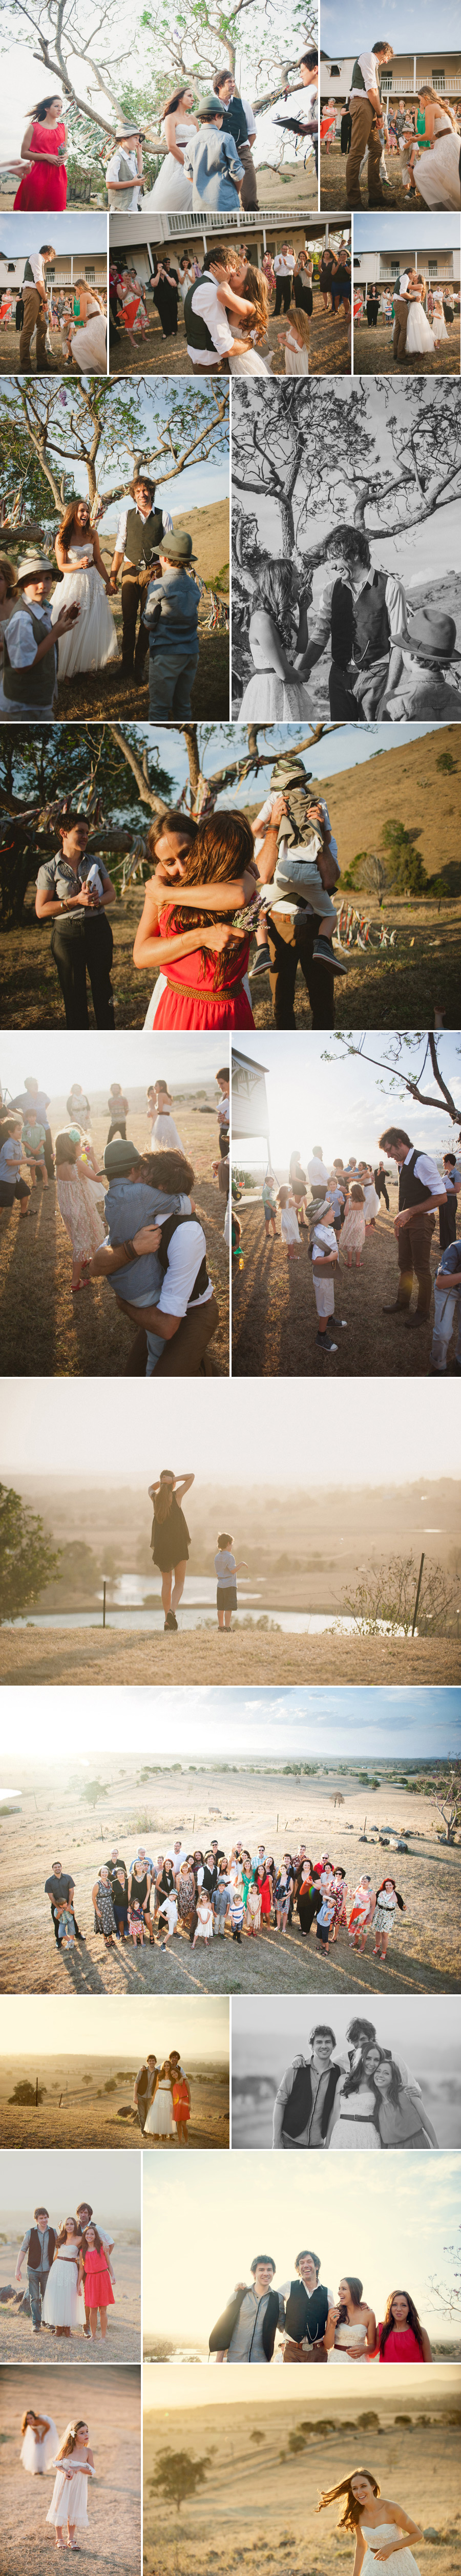 Queensland Australia Wedding